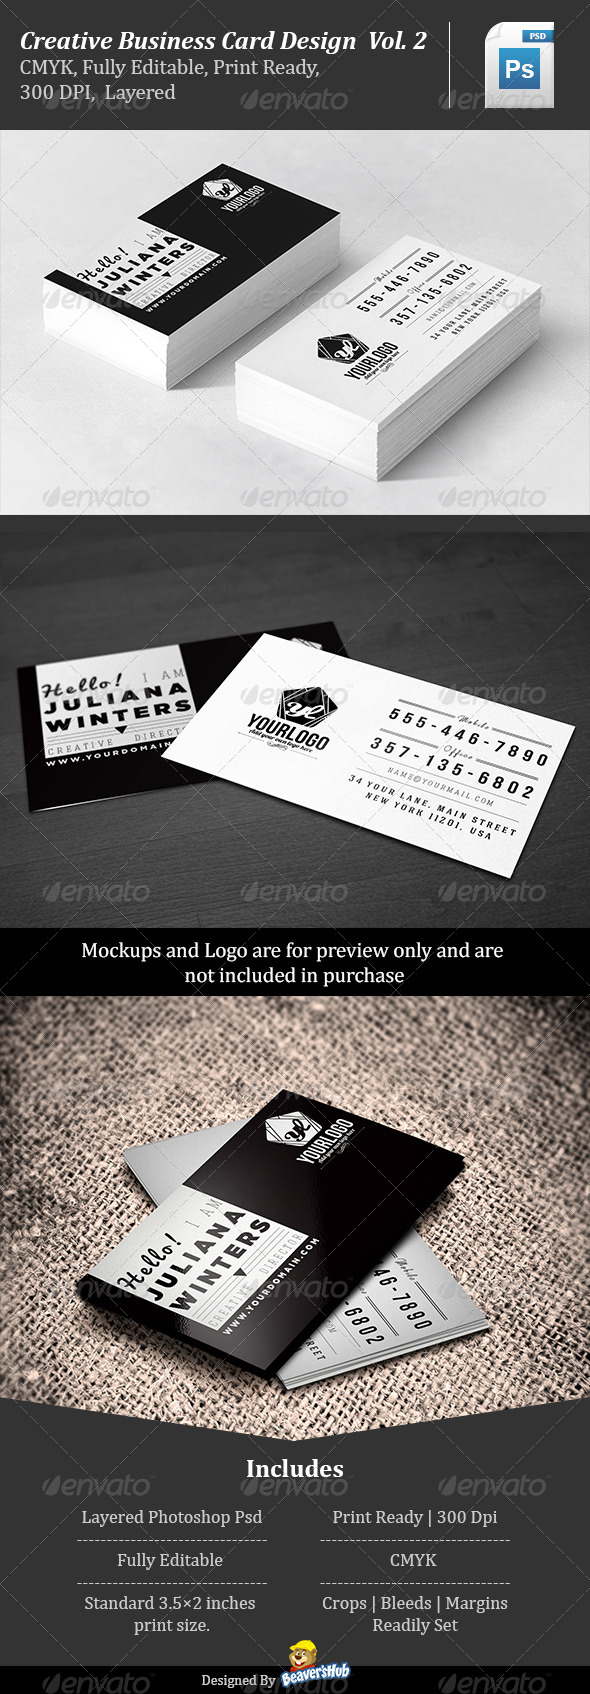 Creative Business Card Design Vol.2 - Creative Business Cards